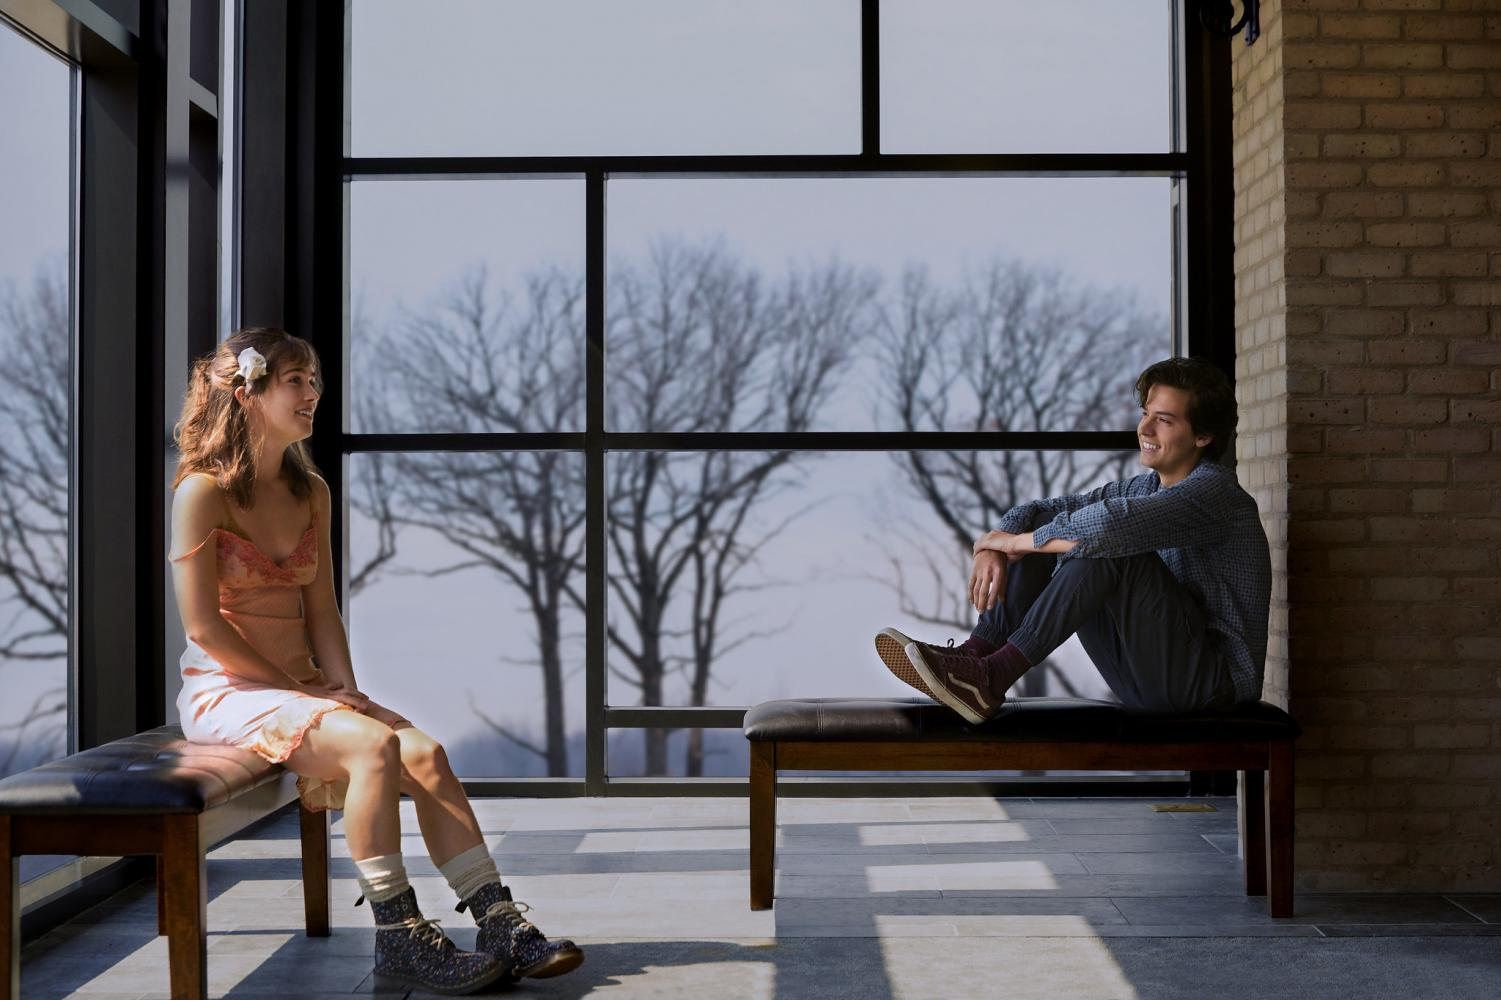 Haley Lu Richardson (left) and Cole Sprouse (right) portray two teens with a powerful connection in the romantic drama film Five Feet Apart.